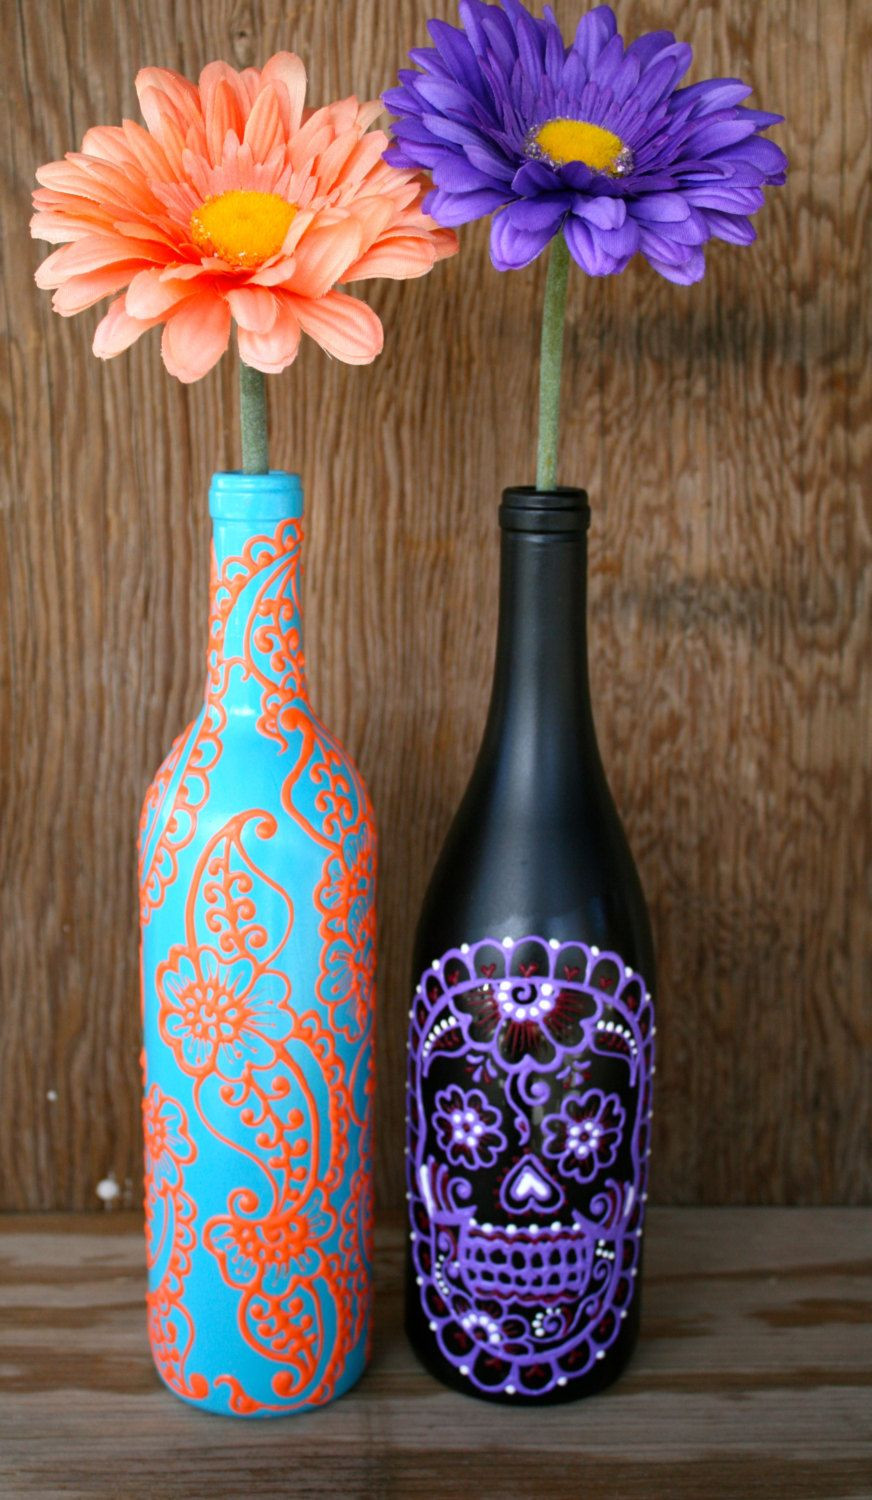 glass bottle vases wholesale of hand painted wine bottle vase up cycled turquoise and coral orange with regard to hand painted wine bottle vase up cycled turquoise and coral orange vibrant henna style design 25 00 via etsy